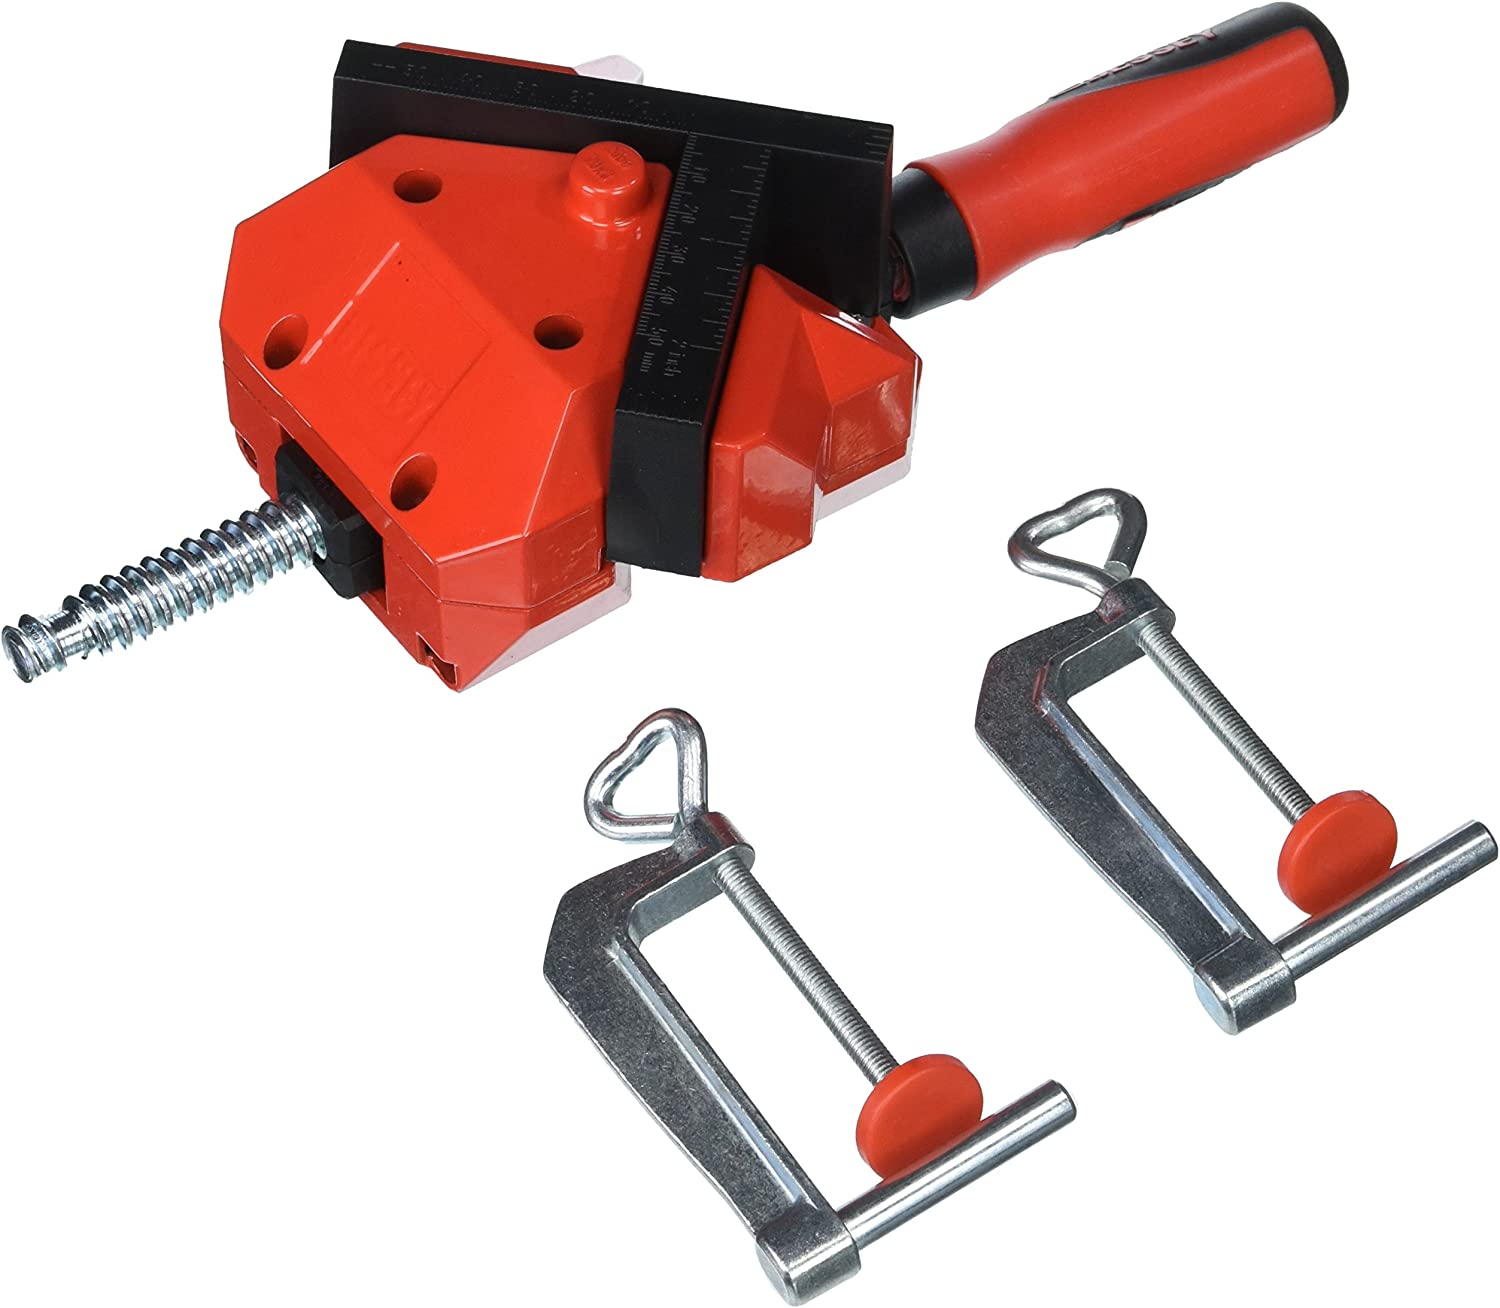 Bessey Tools WS-3+2K 90 Degree Angle Clamp for T Joints and Mitered Corners